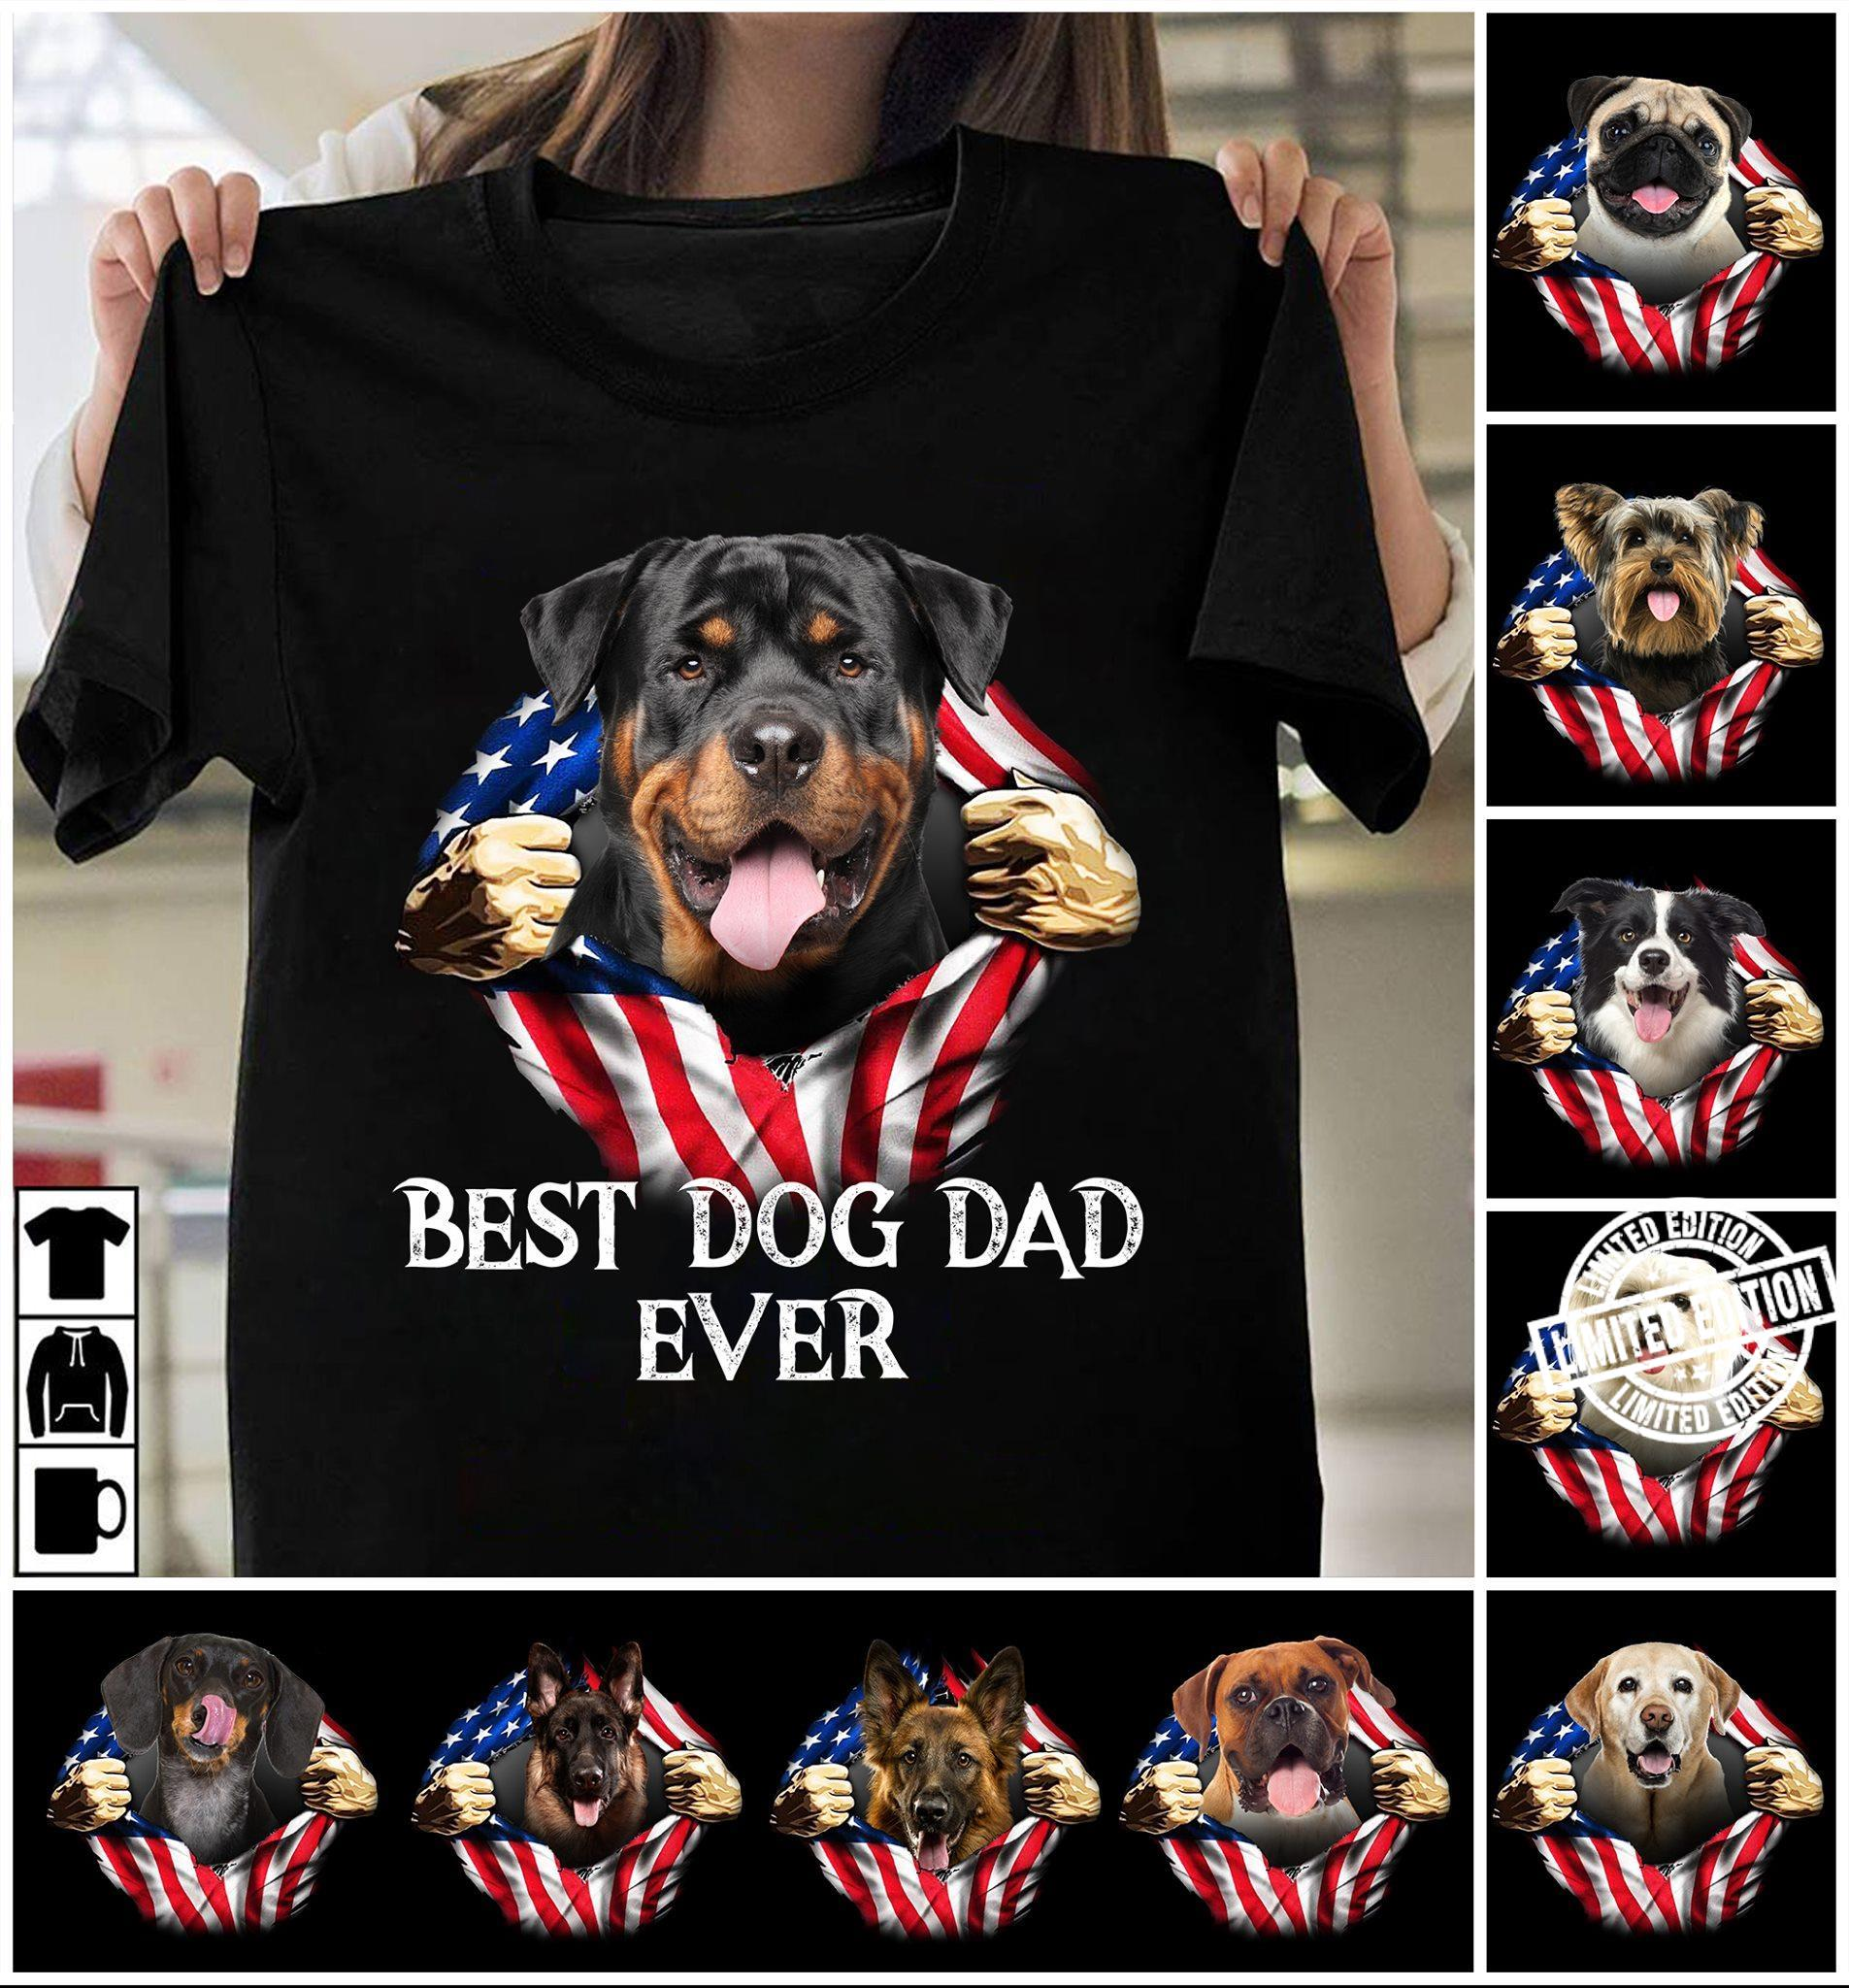 4th of july best dog dad ever shirt